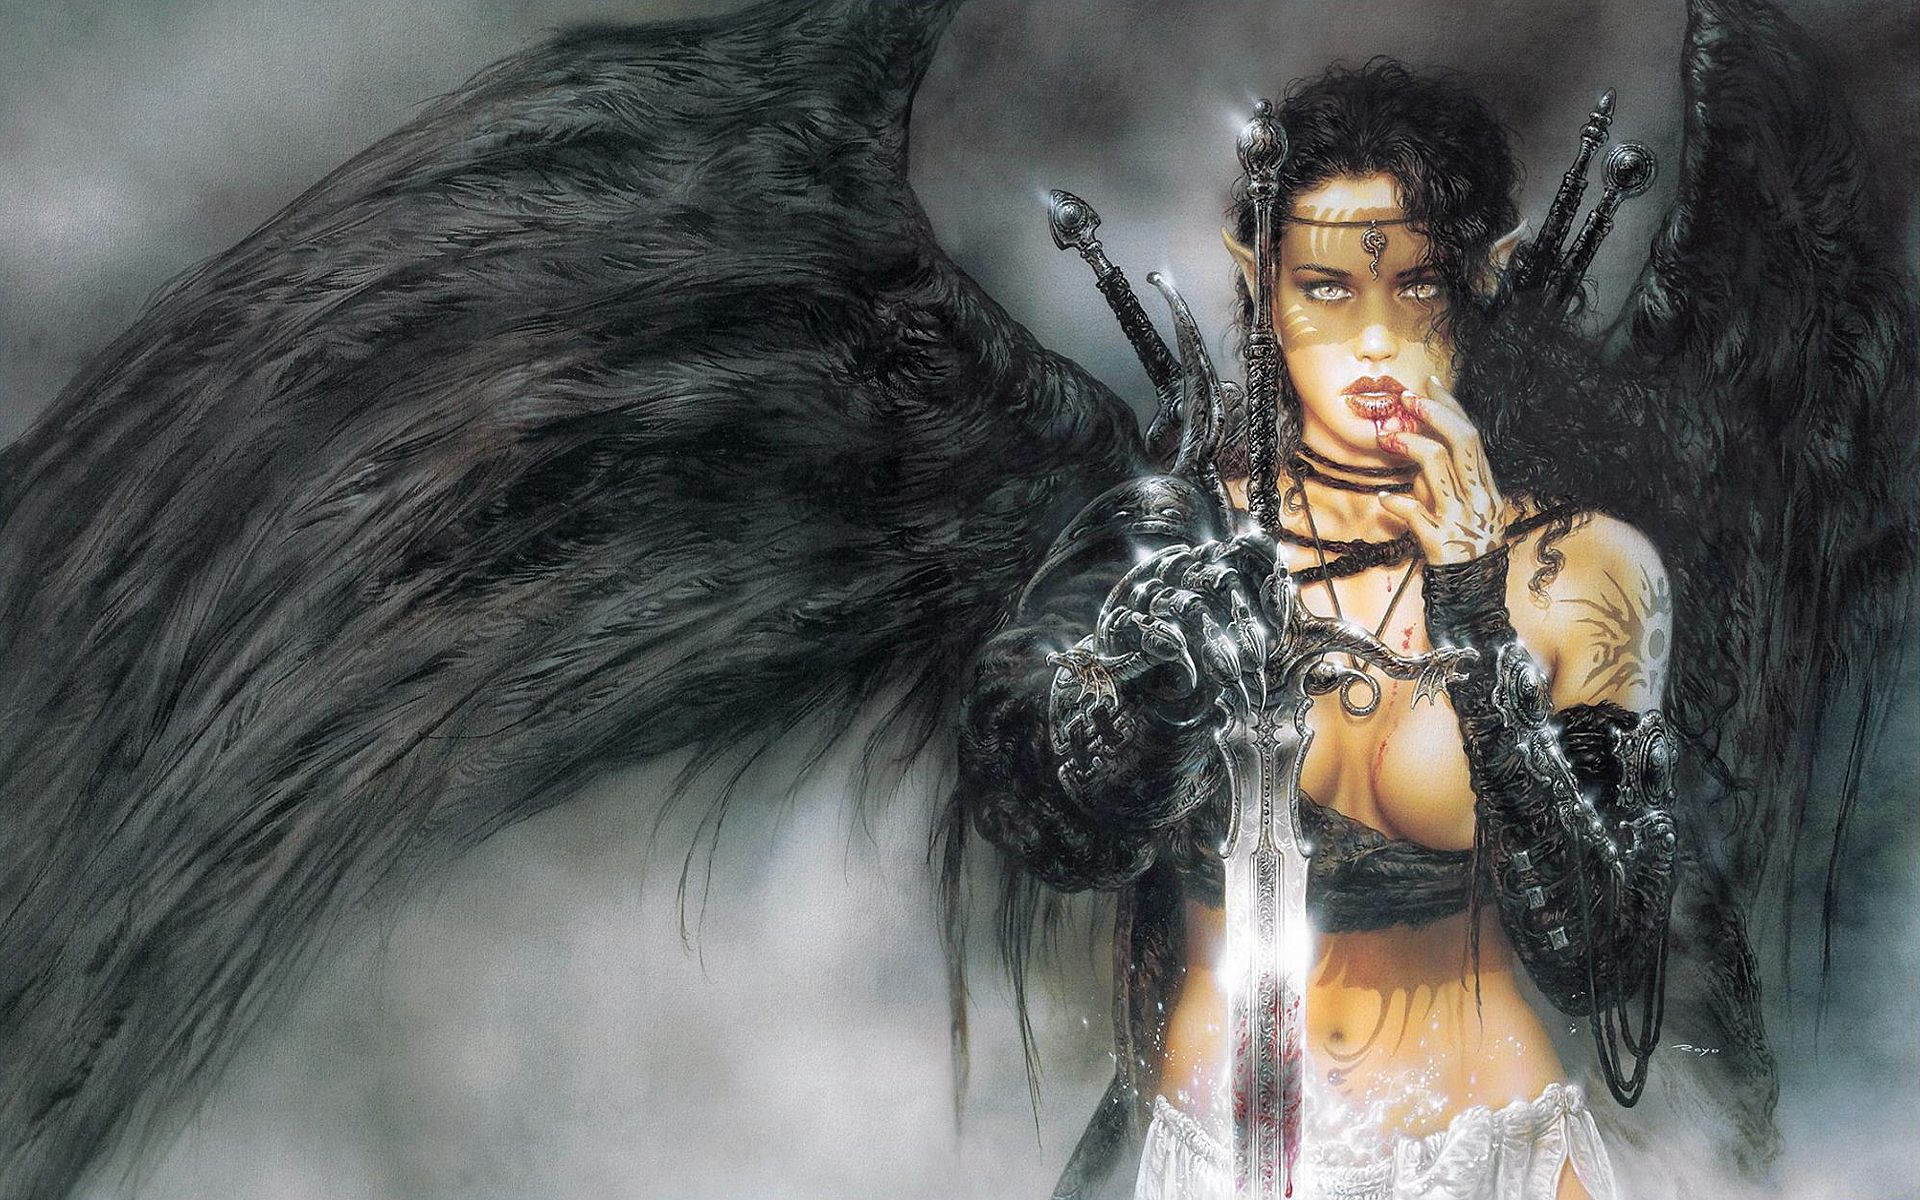 Artistic luis royo wallpapers backgrounds xpx luis royo wallpapers artistic luis royo wallpapers backgrounds xpx luis royo voltagebd Image collections